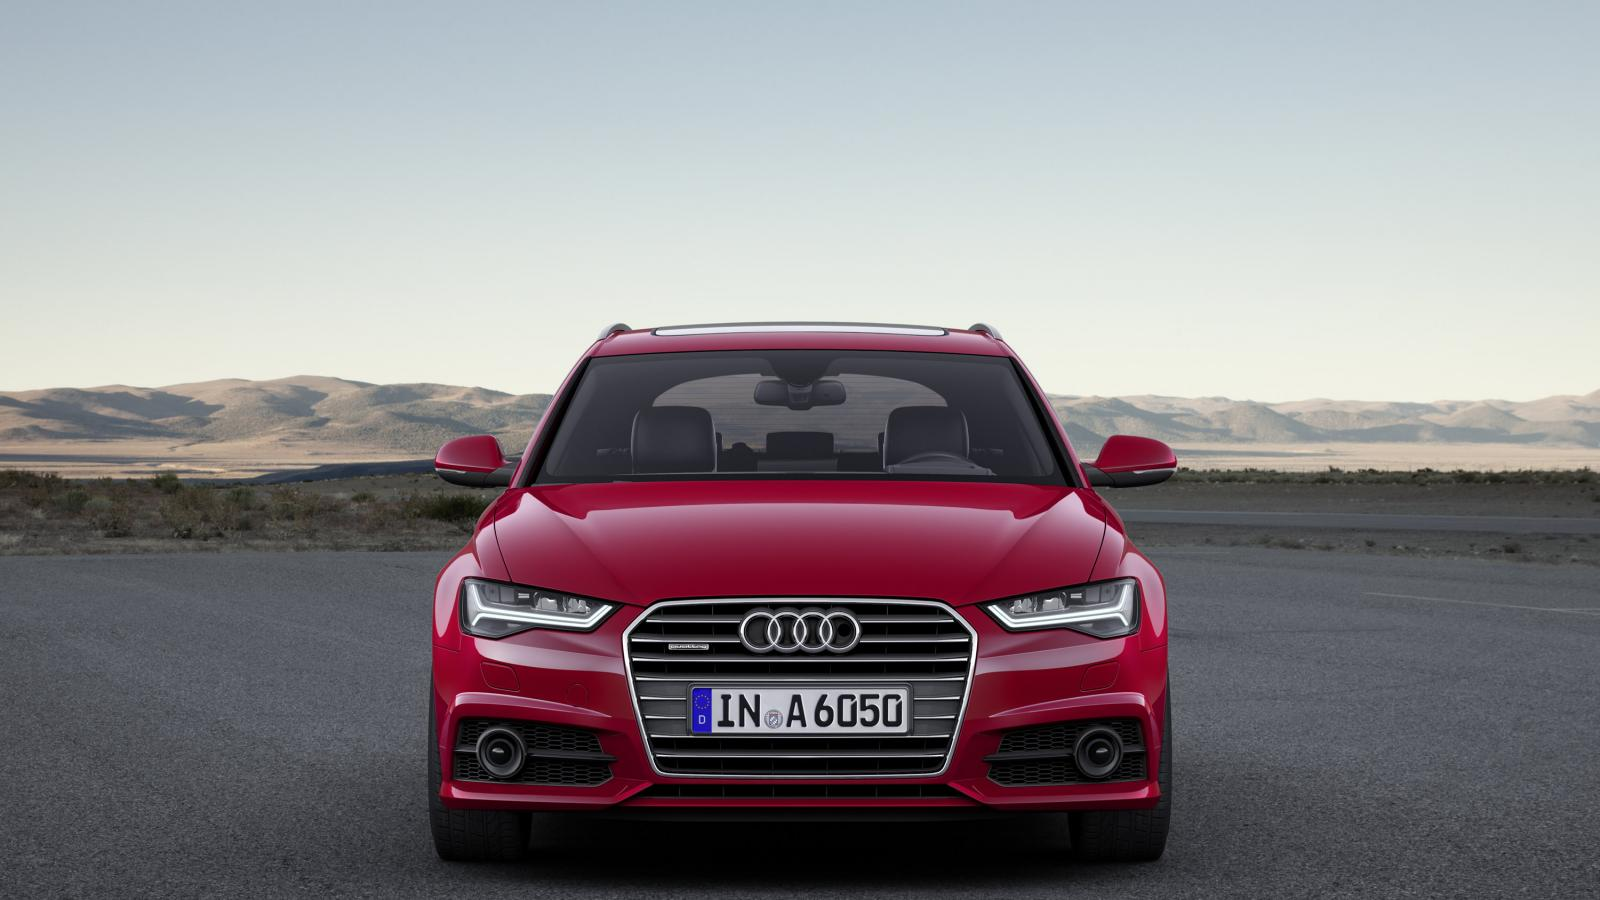 audi a6 and a7 photo gallery autoblog 2017 2018 best cars reviews 2017 2018 best cars reviews. Black Bedroom Furniture Sets. Home Design Ideas